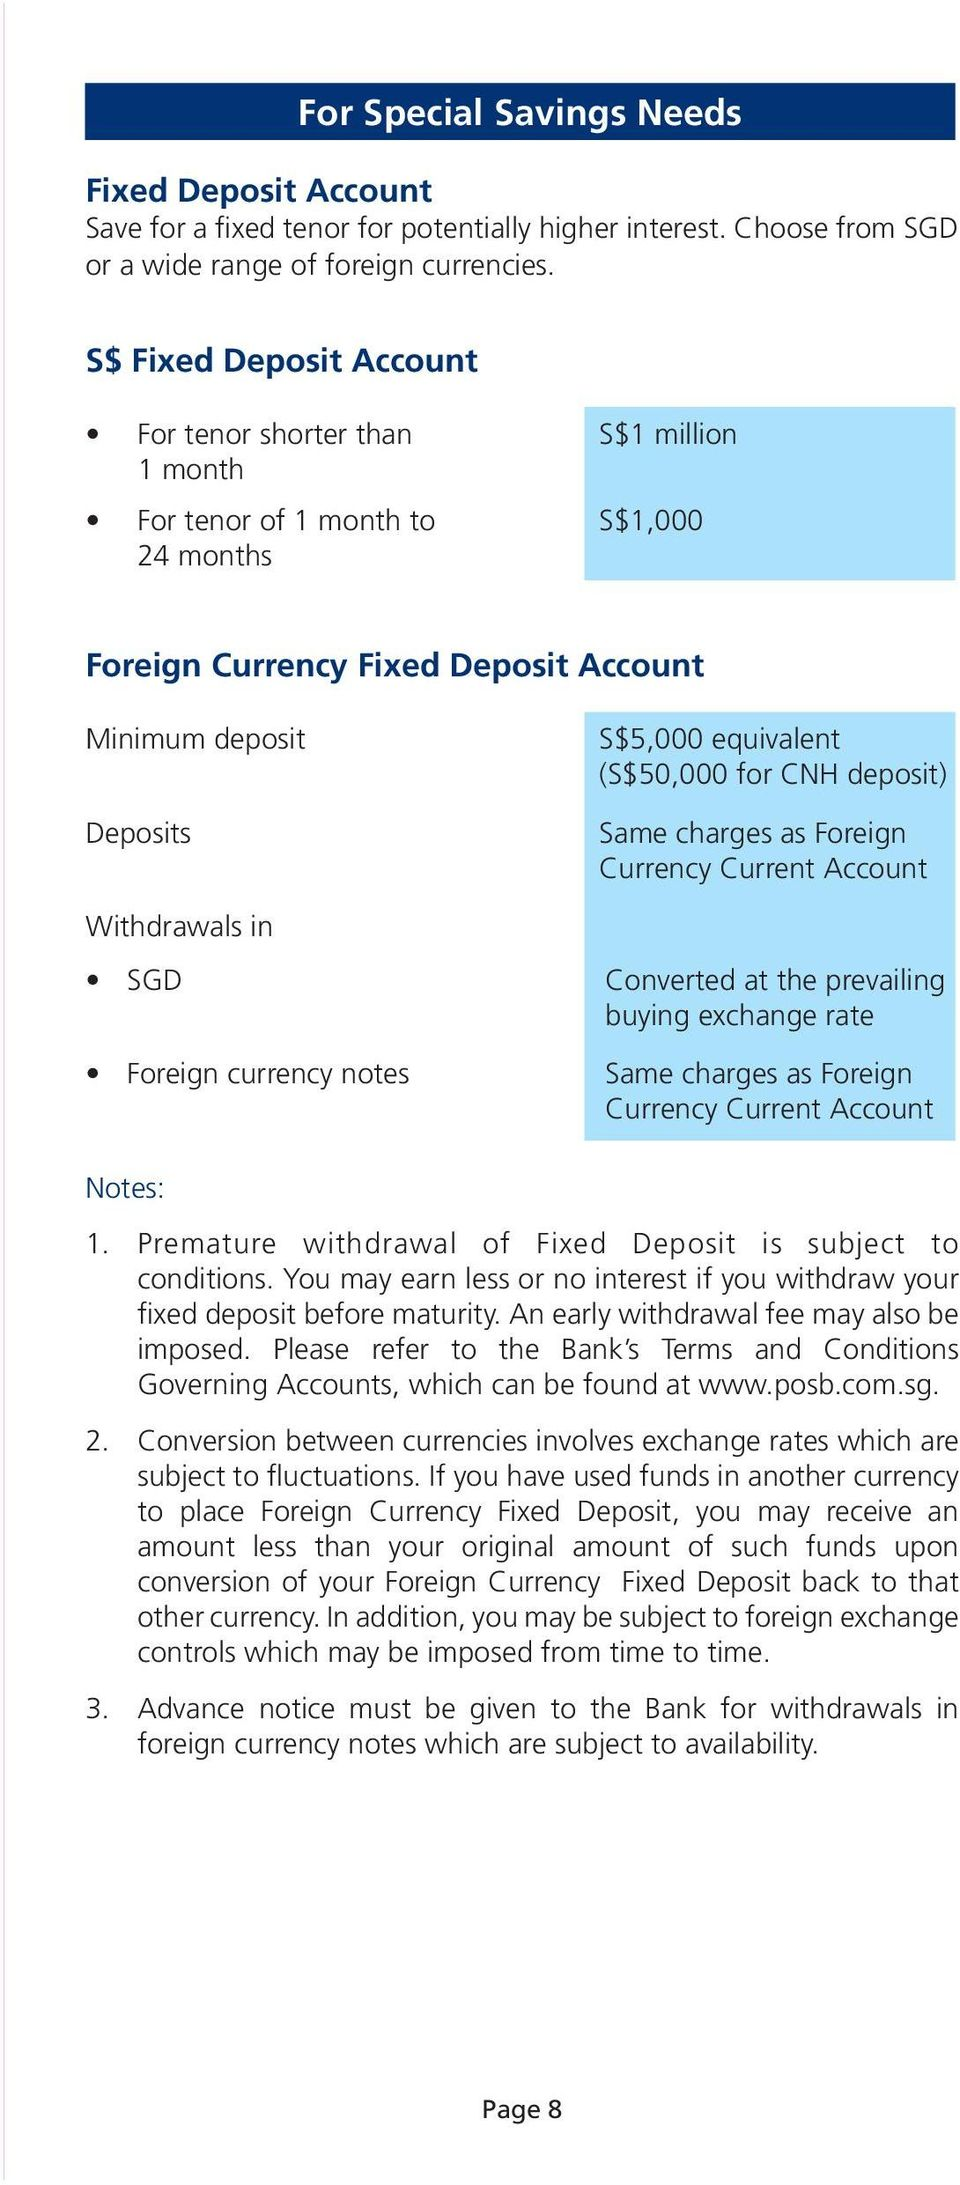 The topic of currency deposits is intentionally thrown